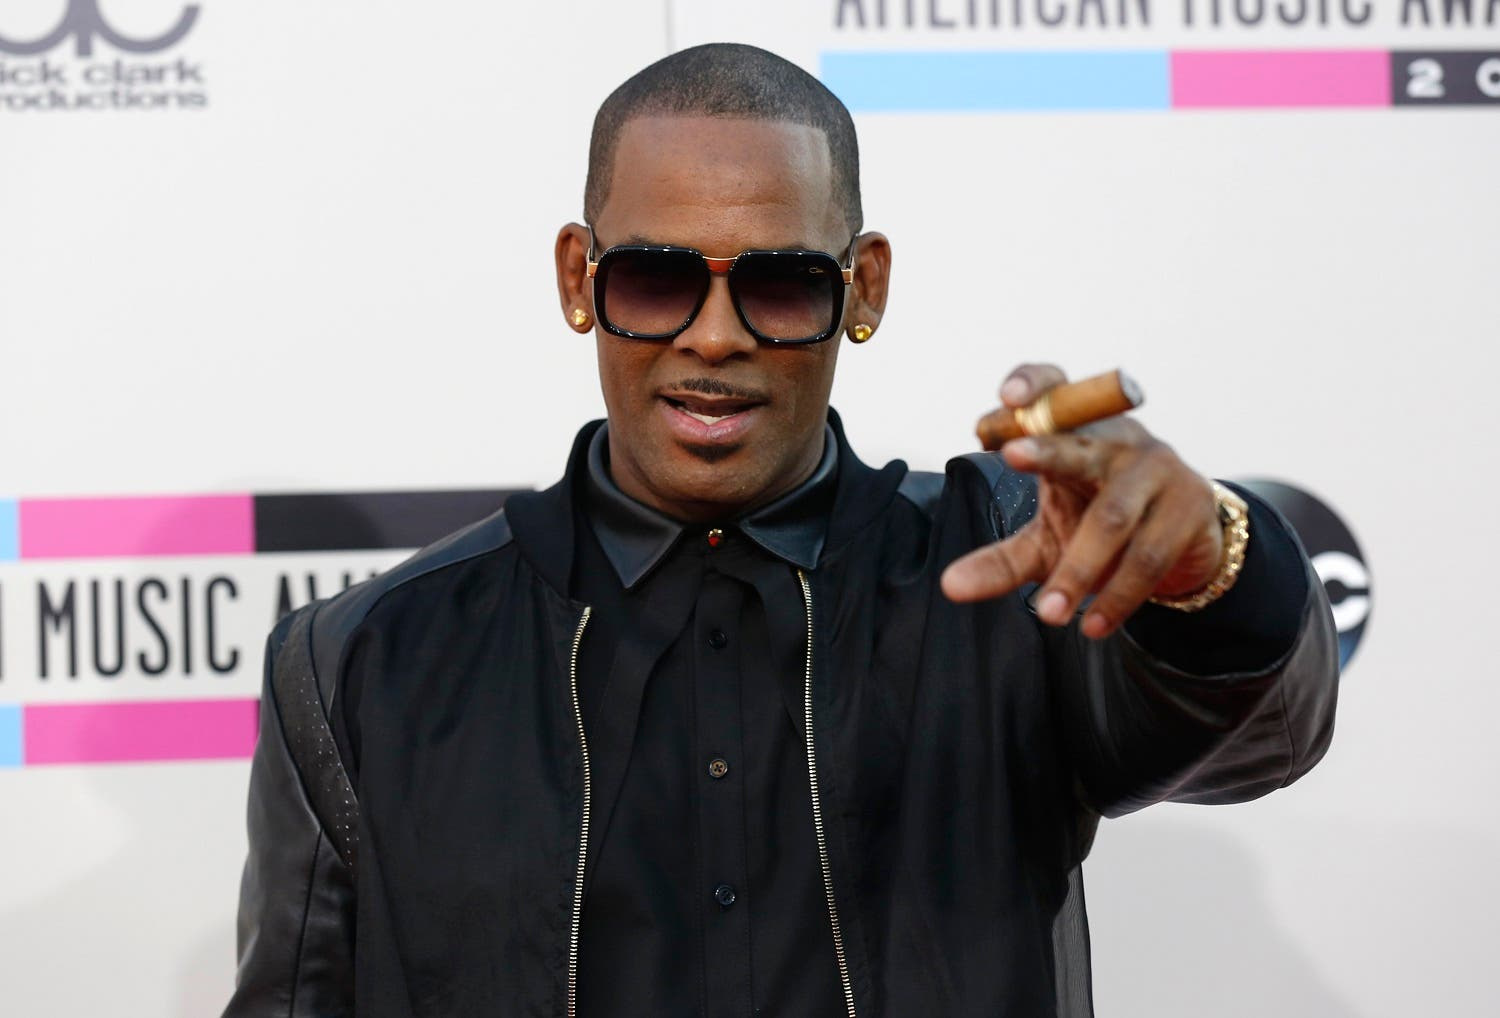 Singer R. Kelly arrives at the 41st American Music Awards in Los Angeles, California November 24, 2013. (Reuters)